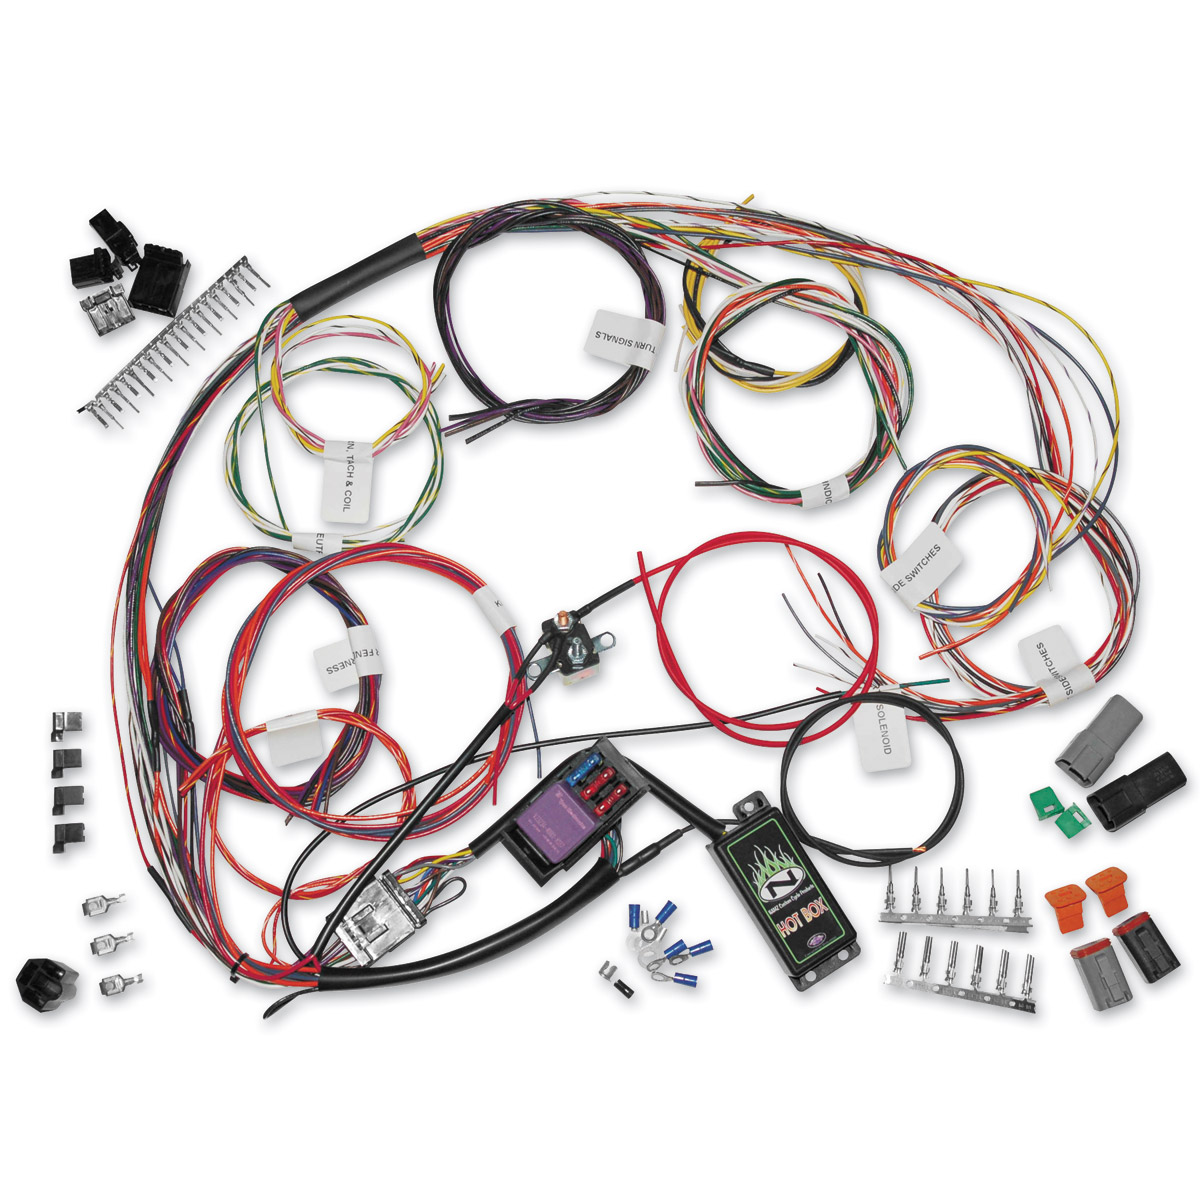 namz custom cycle complete bike wiring harness kit 745 072 j p thank you your email has been sent × ×